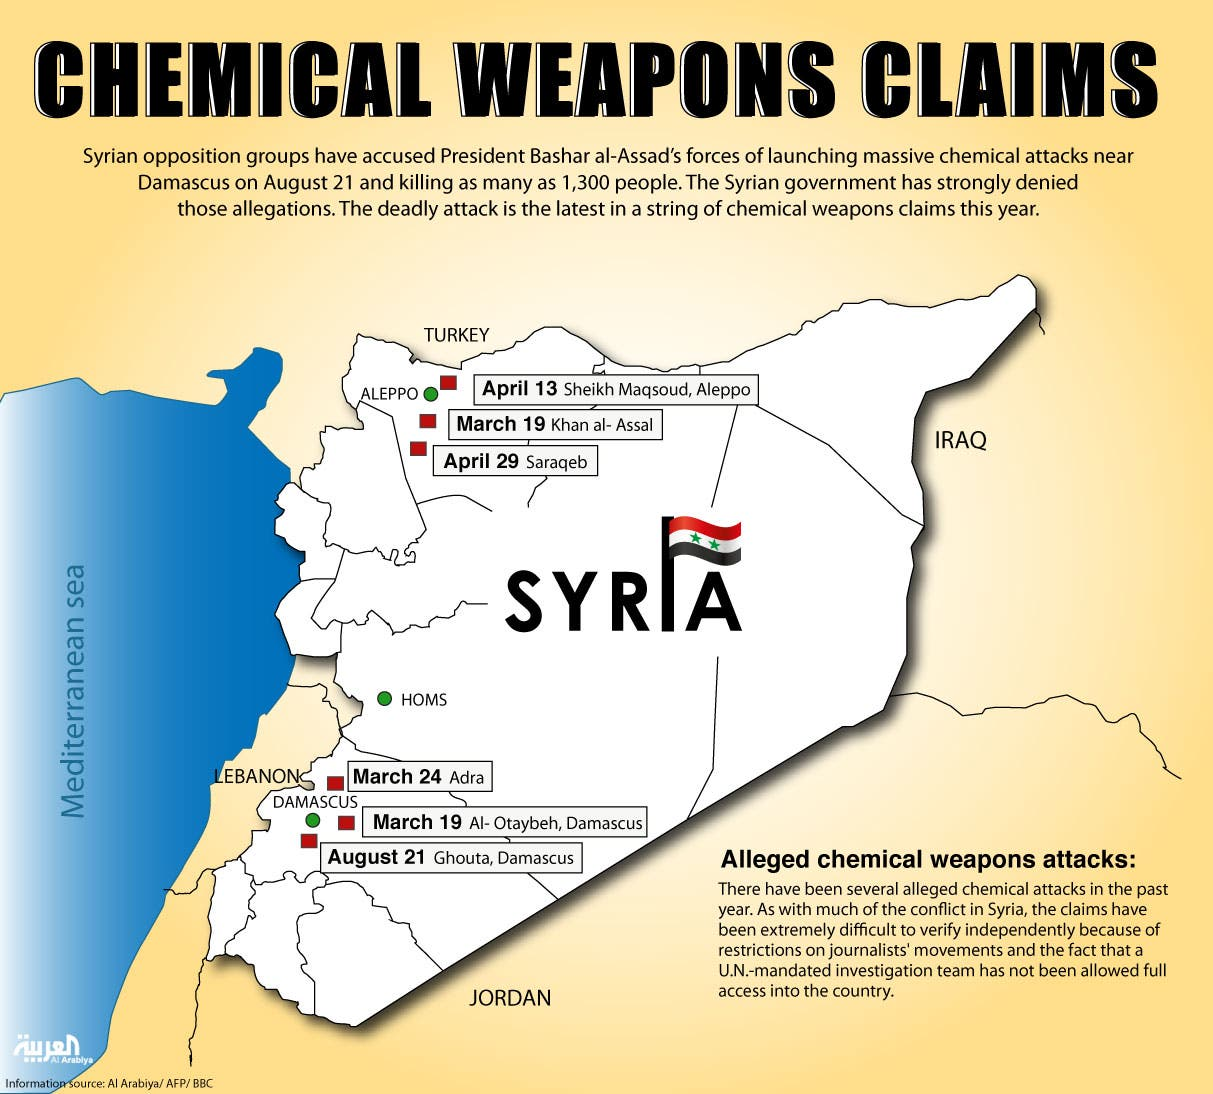 Infographic: Chemical weapons claims (Design by Farwa Rizwan / Al Arabiya English)